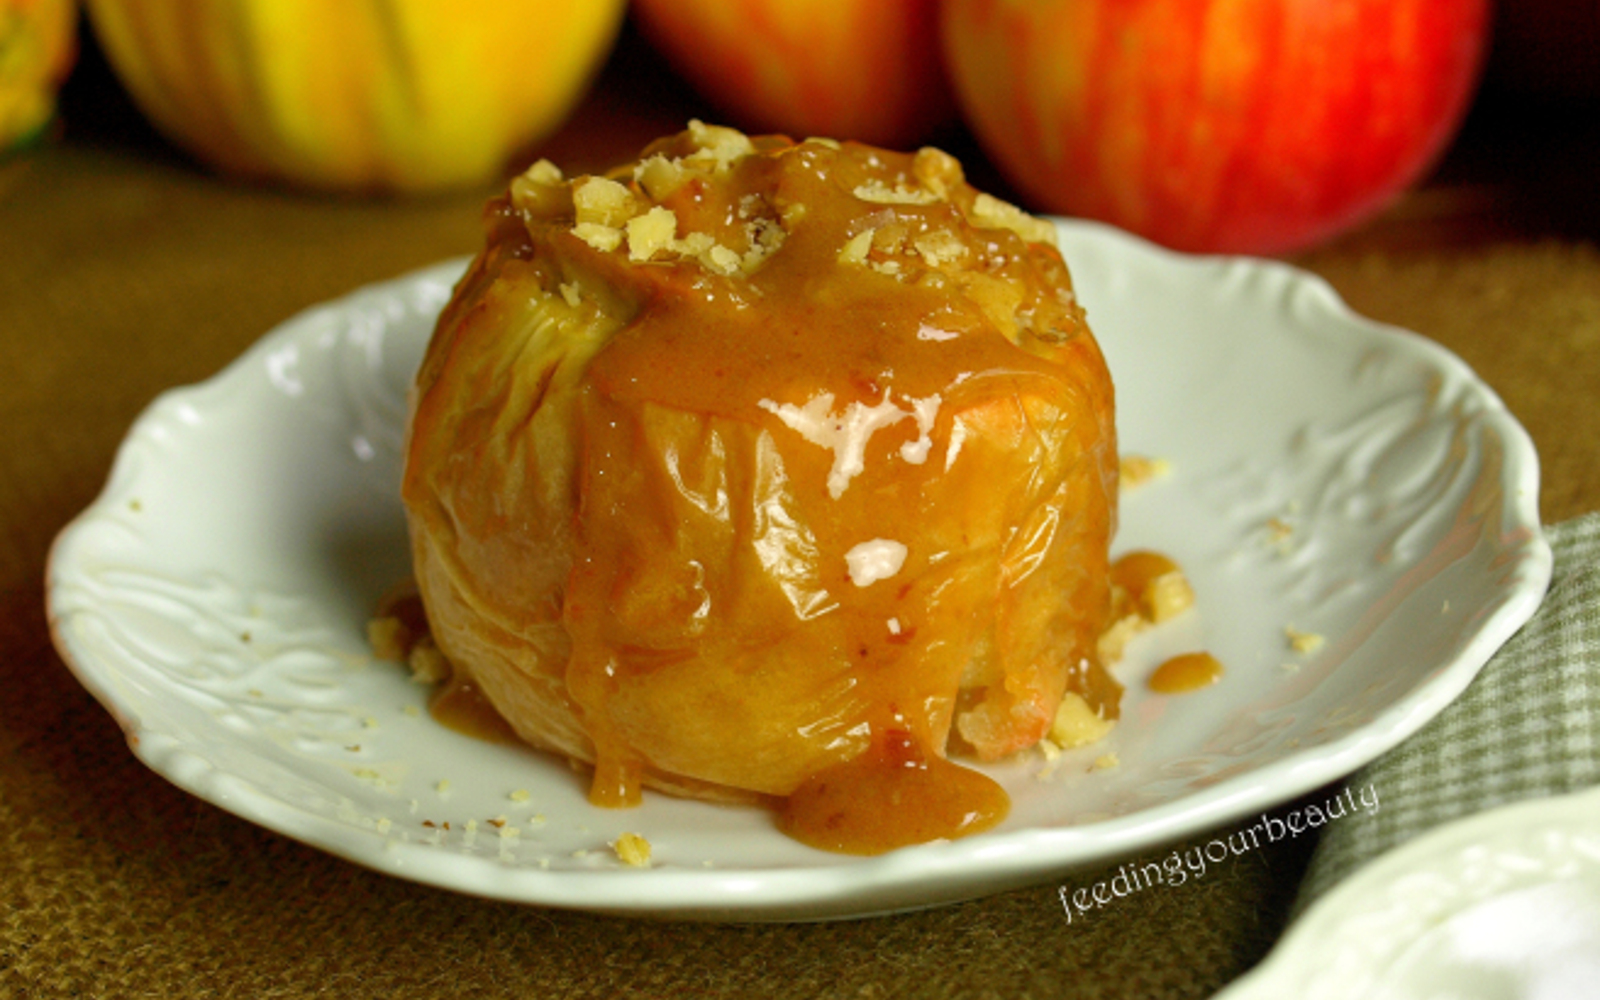 Baked Cheesecake Stuffed Apple